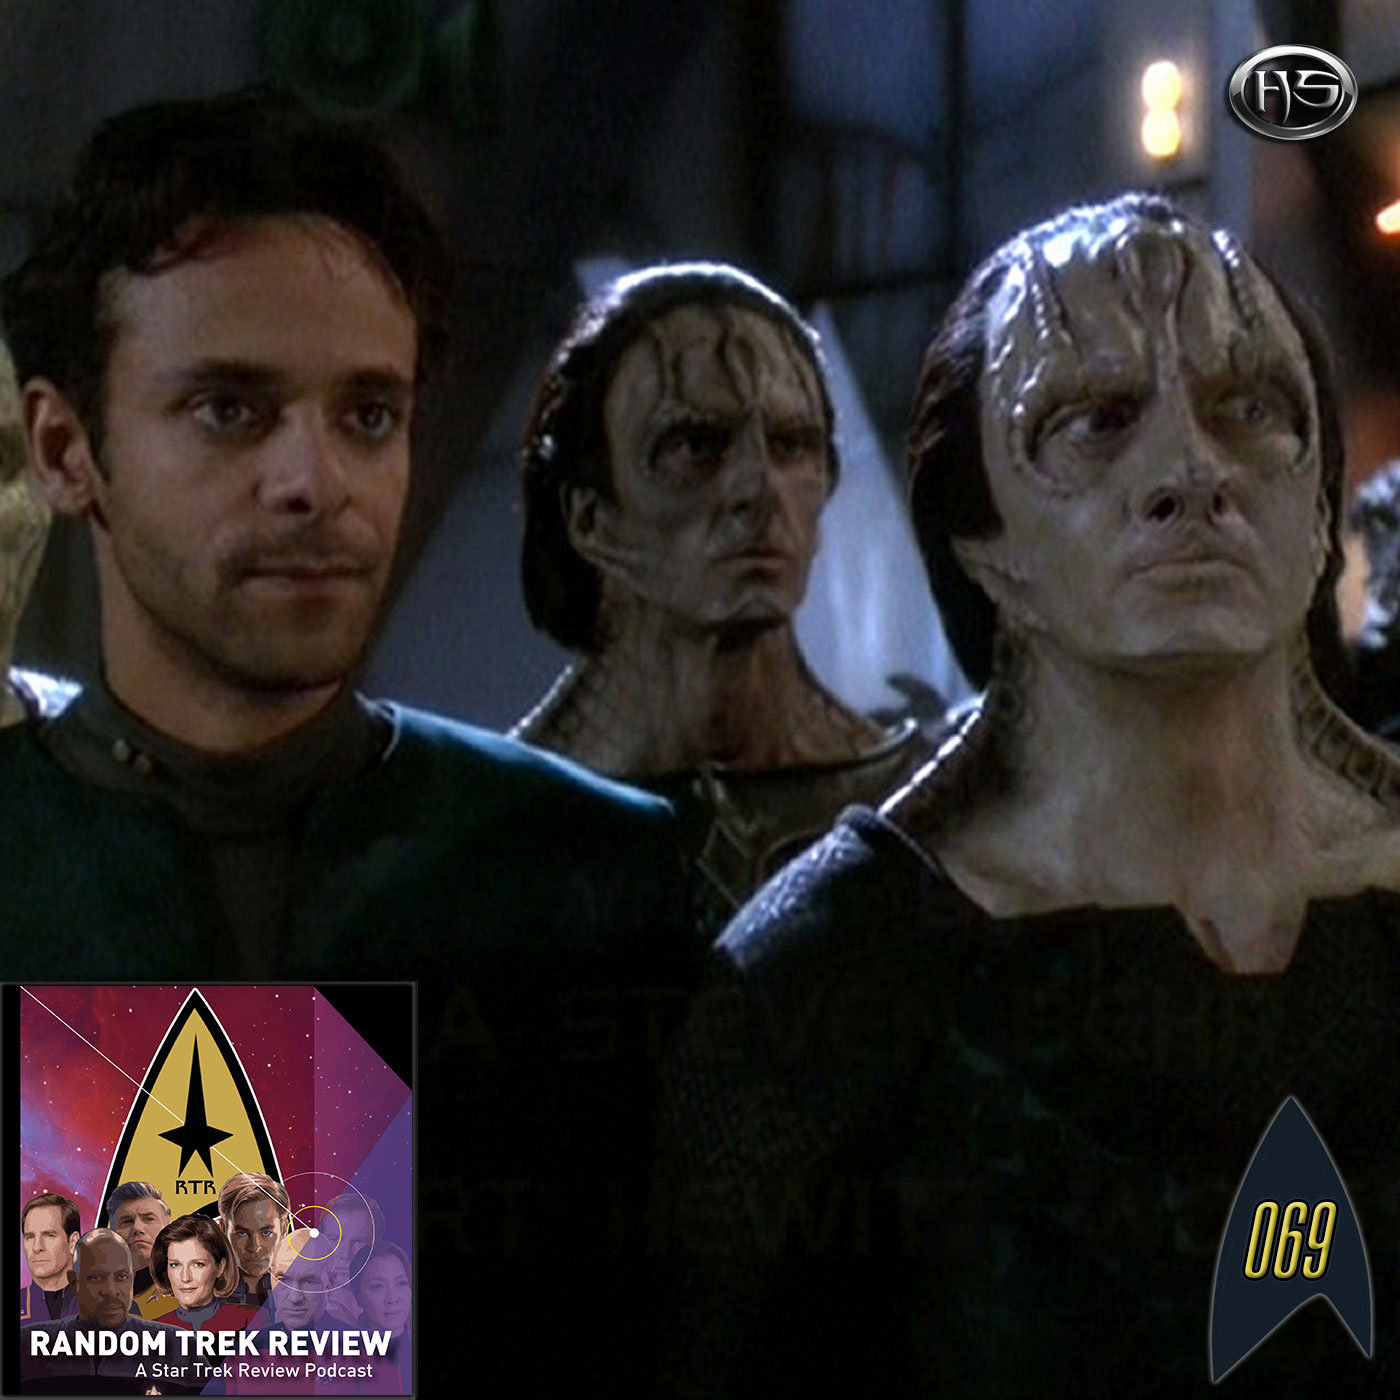 Random Trek Review Episode 69